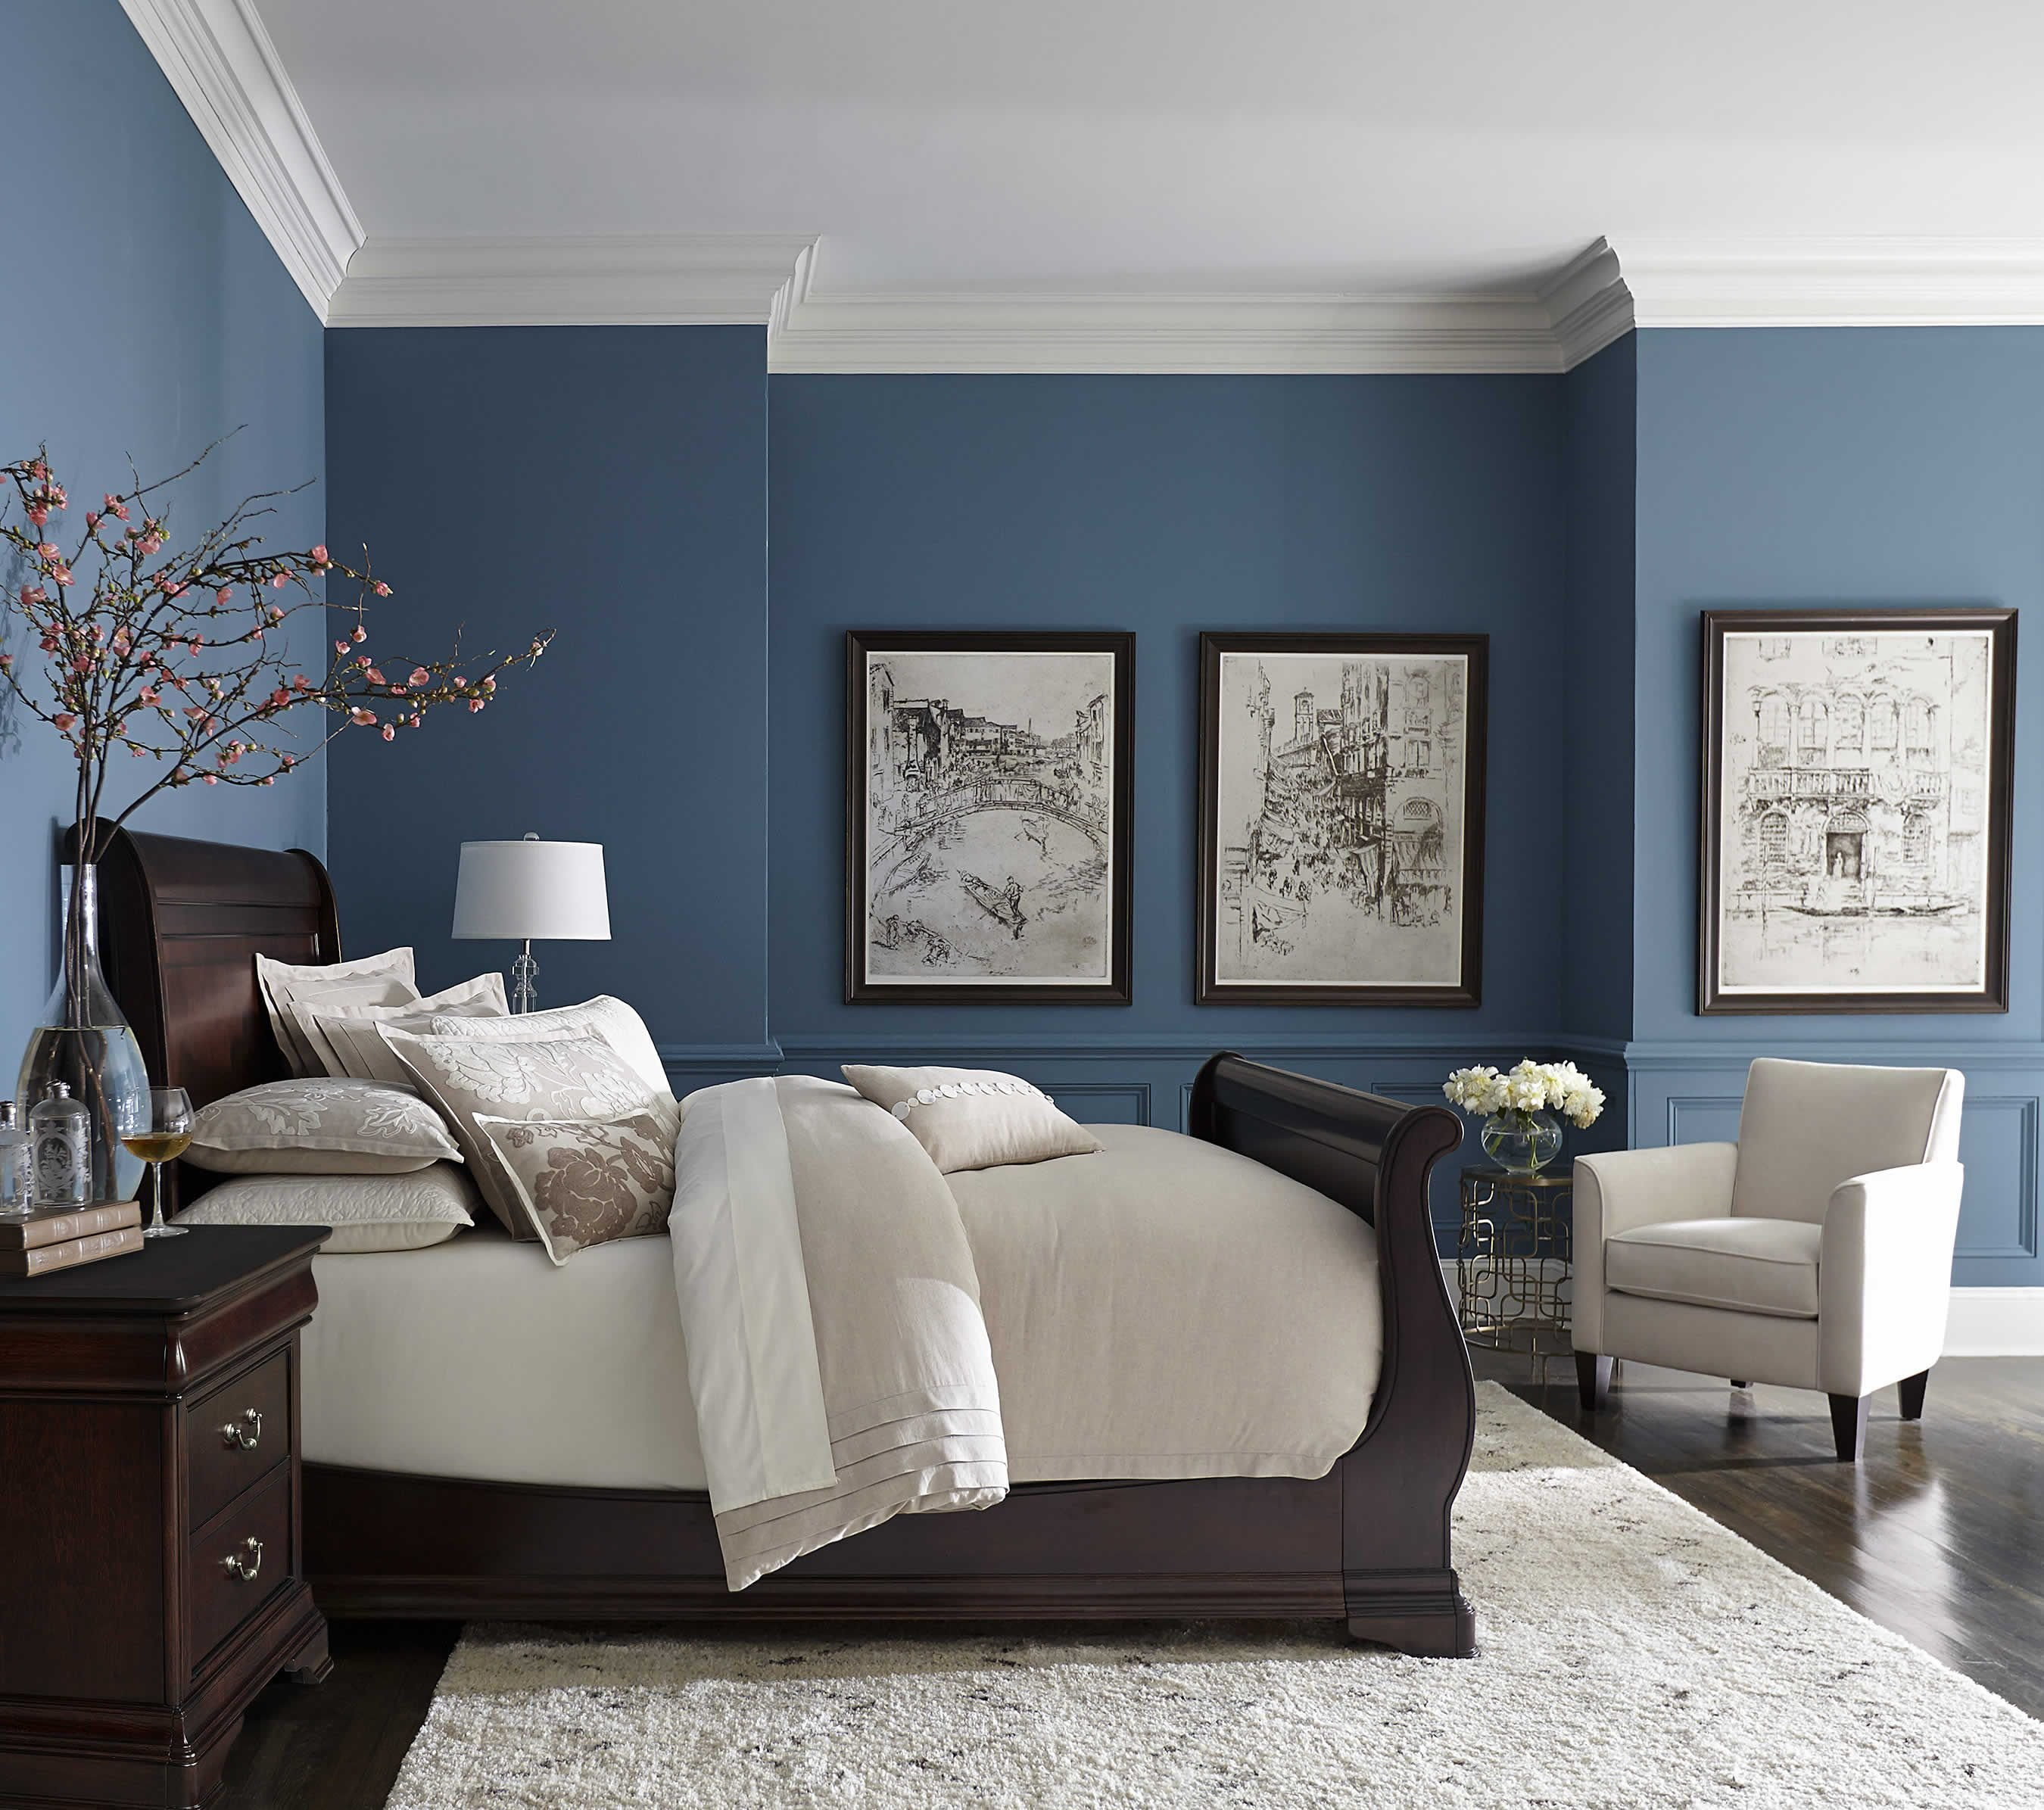 Best Pretty Blue Color With White Crown Molding Bedrooms In With Pictures